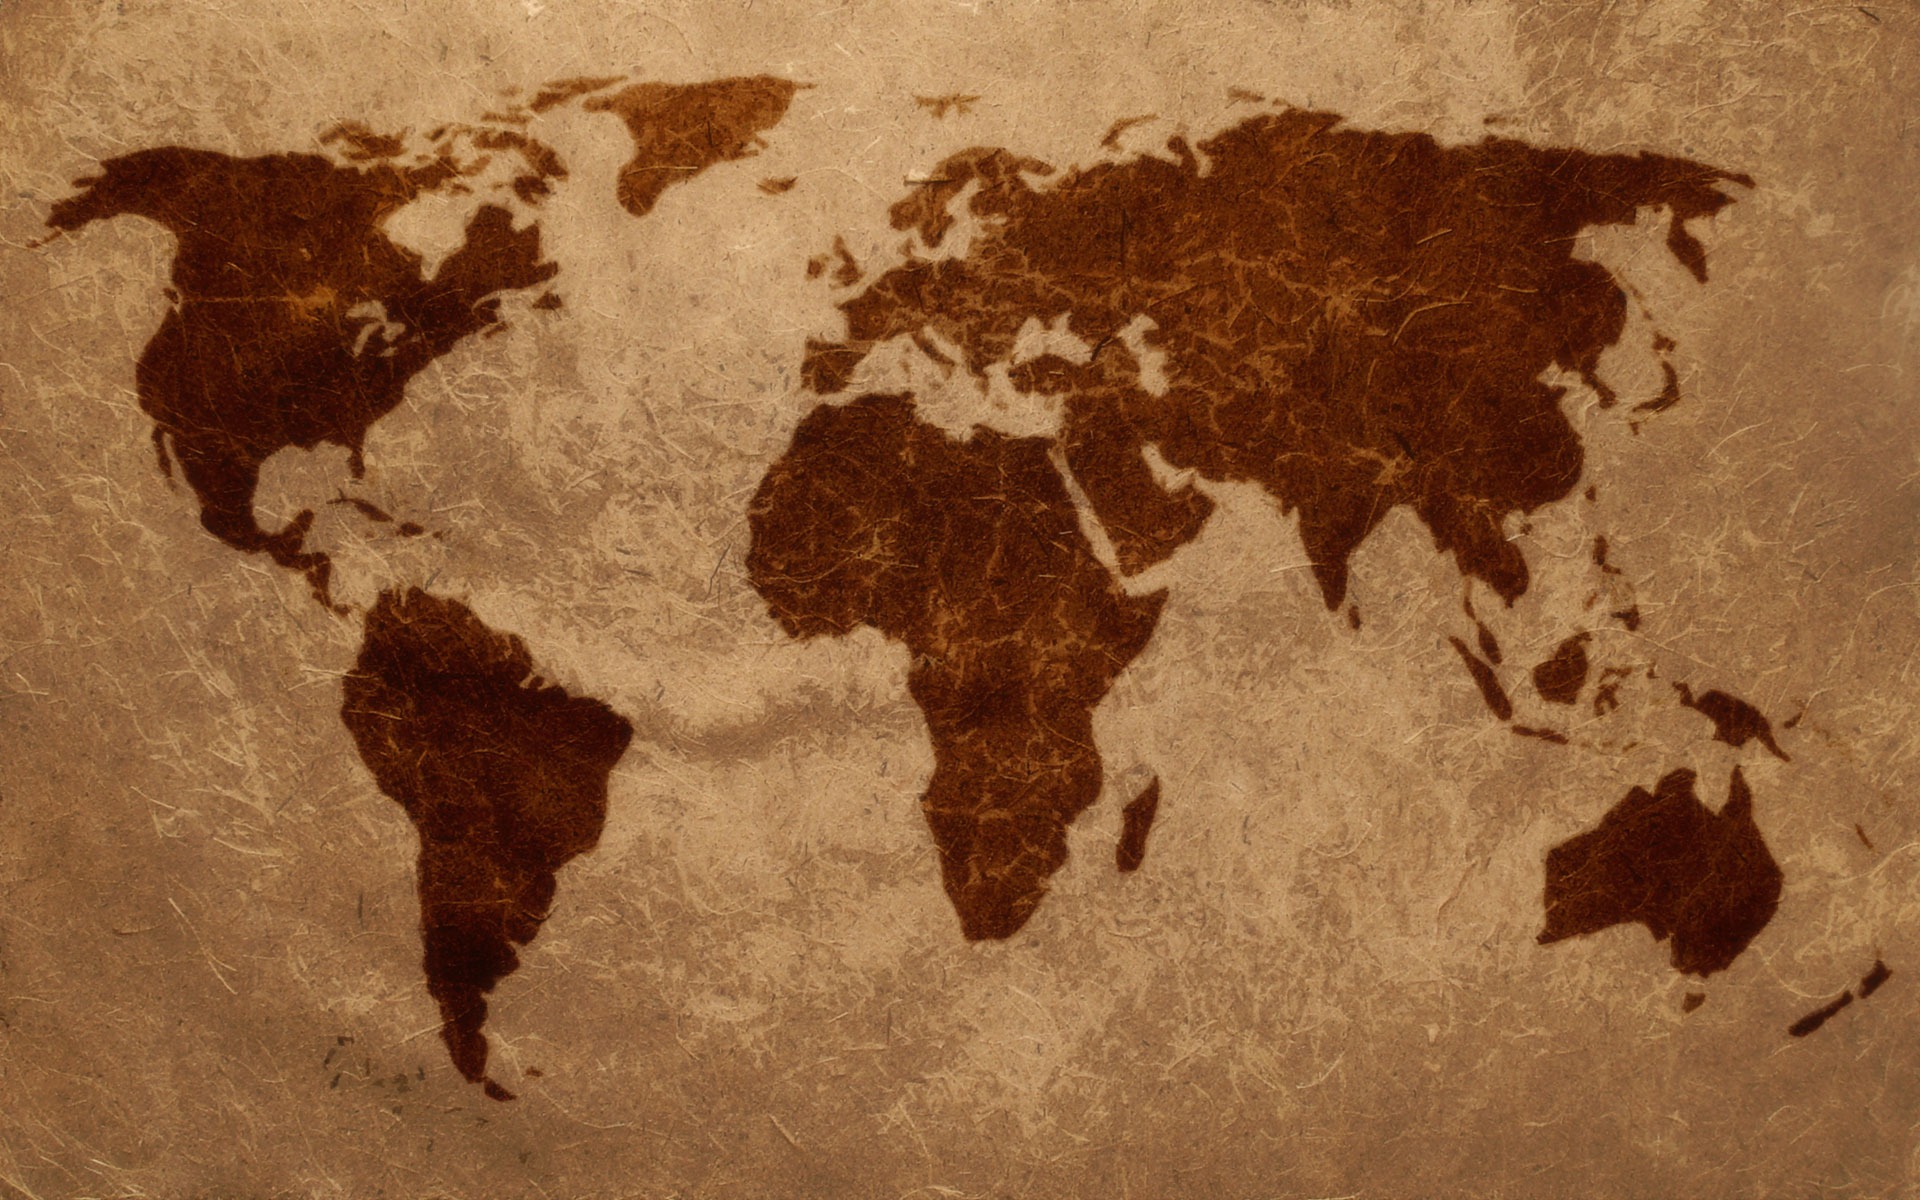 World Map Wallpaper world map wallpaper 6241 1920x1200 px ~ hdwallsource